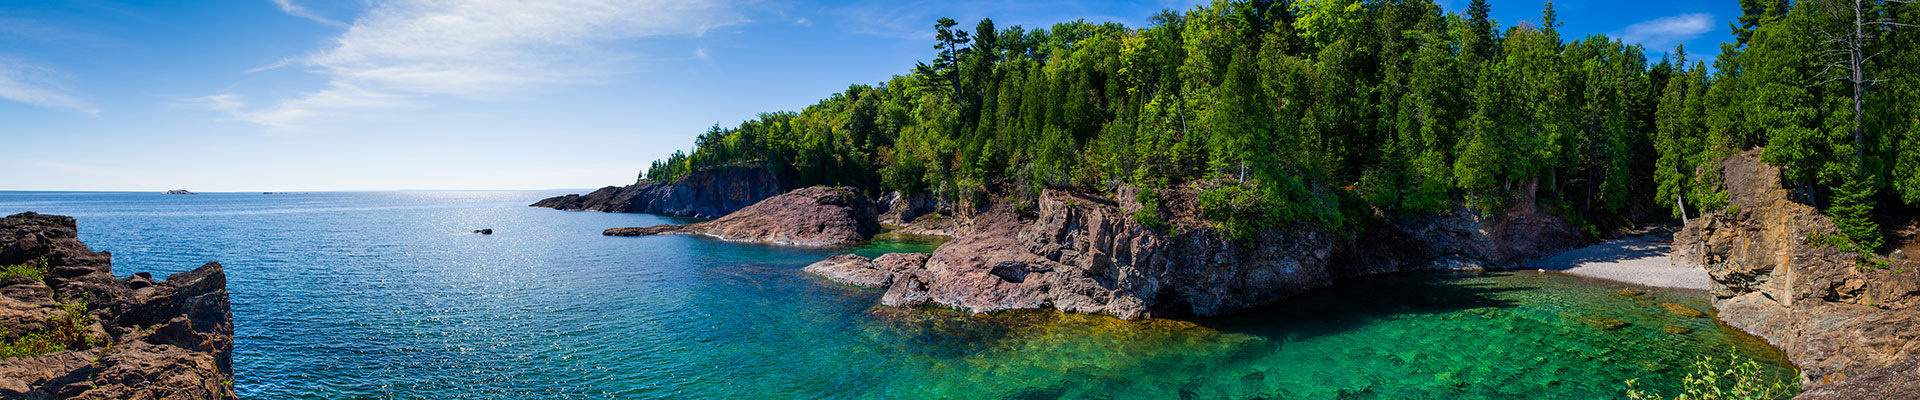 Fantasy RV Tours: 27 Day Great Lakes of North America (27UGLF-053019)